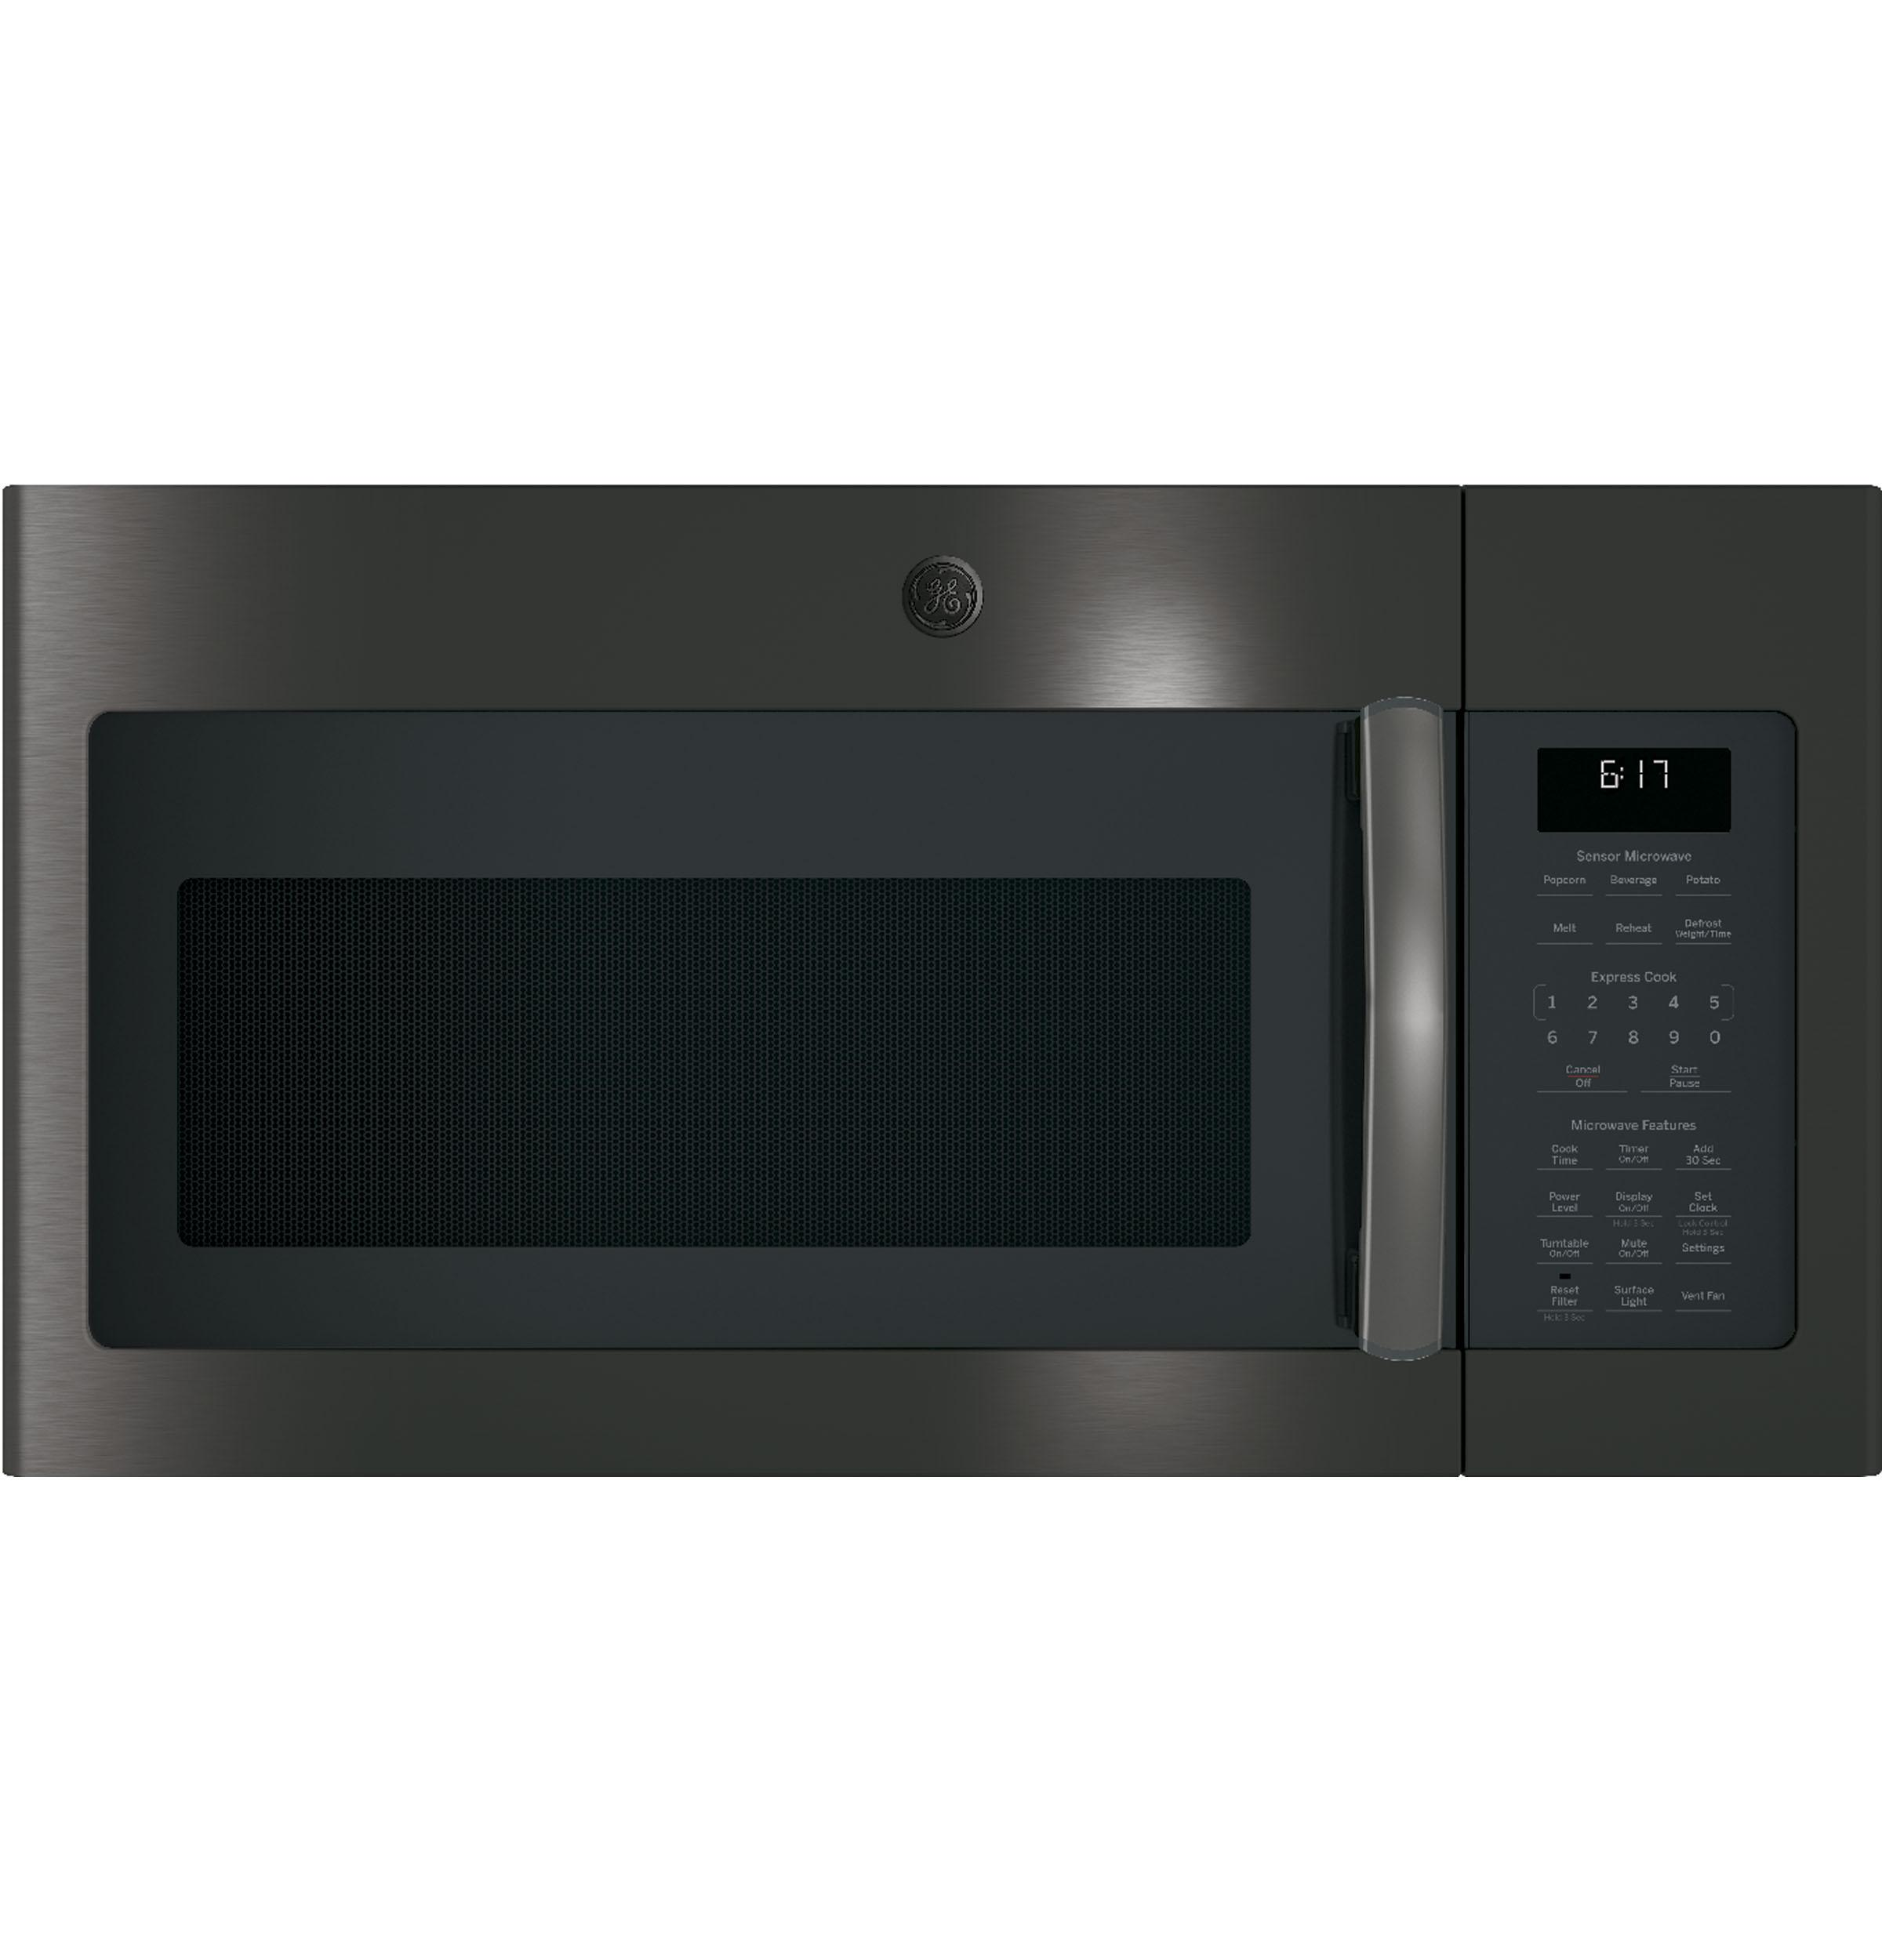 GE(R) 1.7 Cu. Ft. Over-the-Range Sensor Microwave Oven